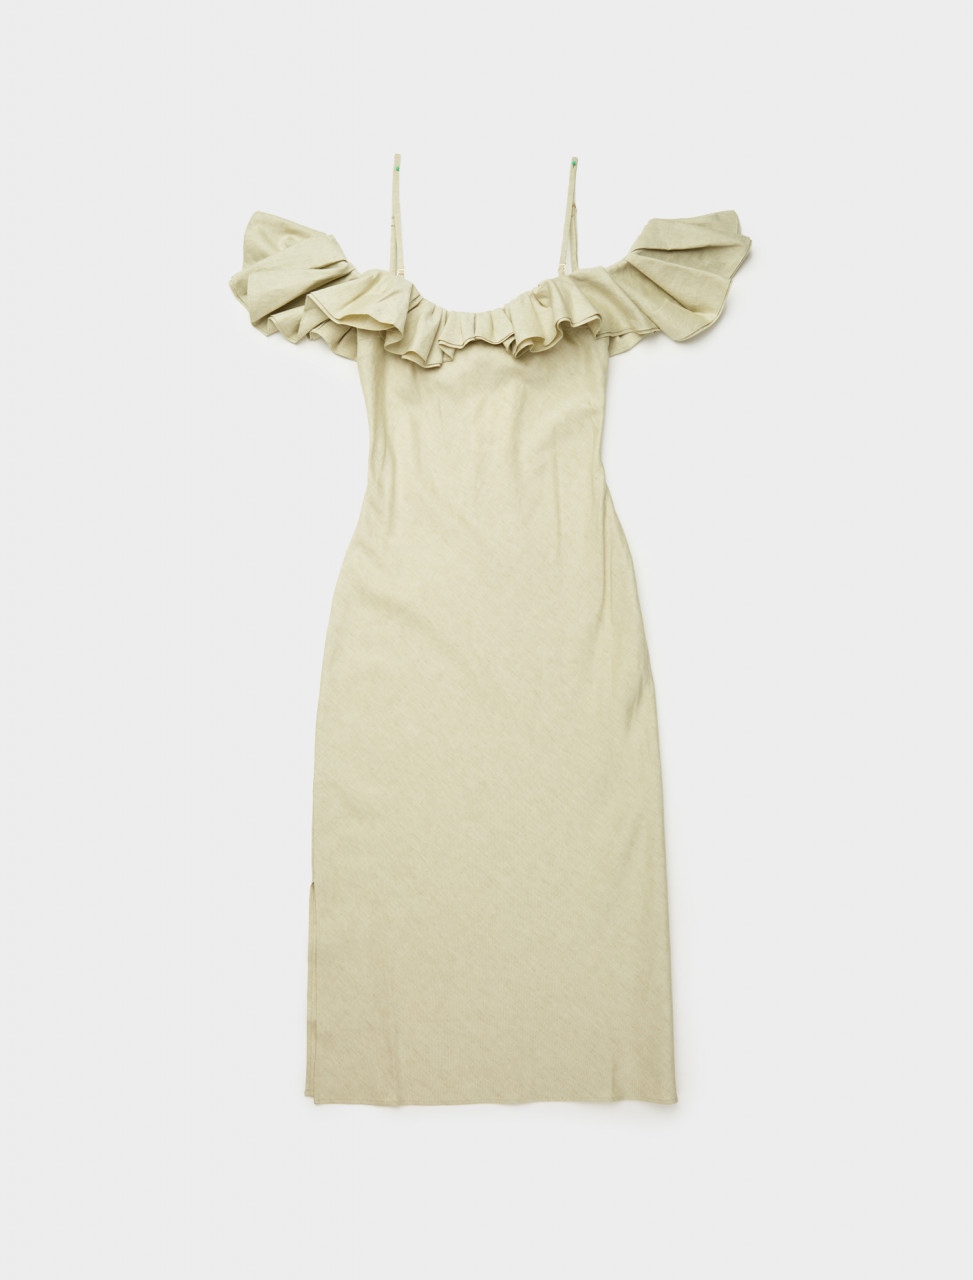 203DR01-203-128540 JACQUEMUS LA ROBE PAMPELONNE IN LIGHT GREEN FRONT